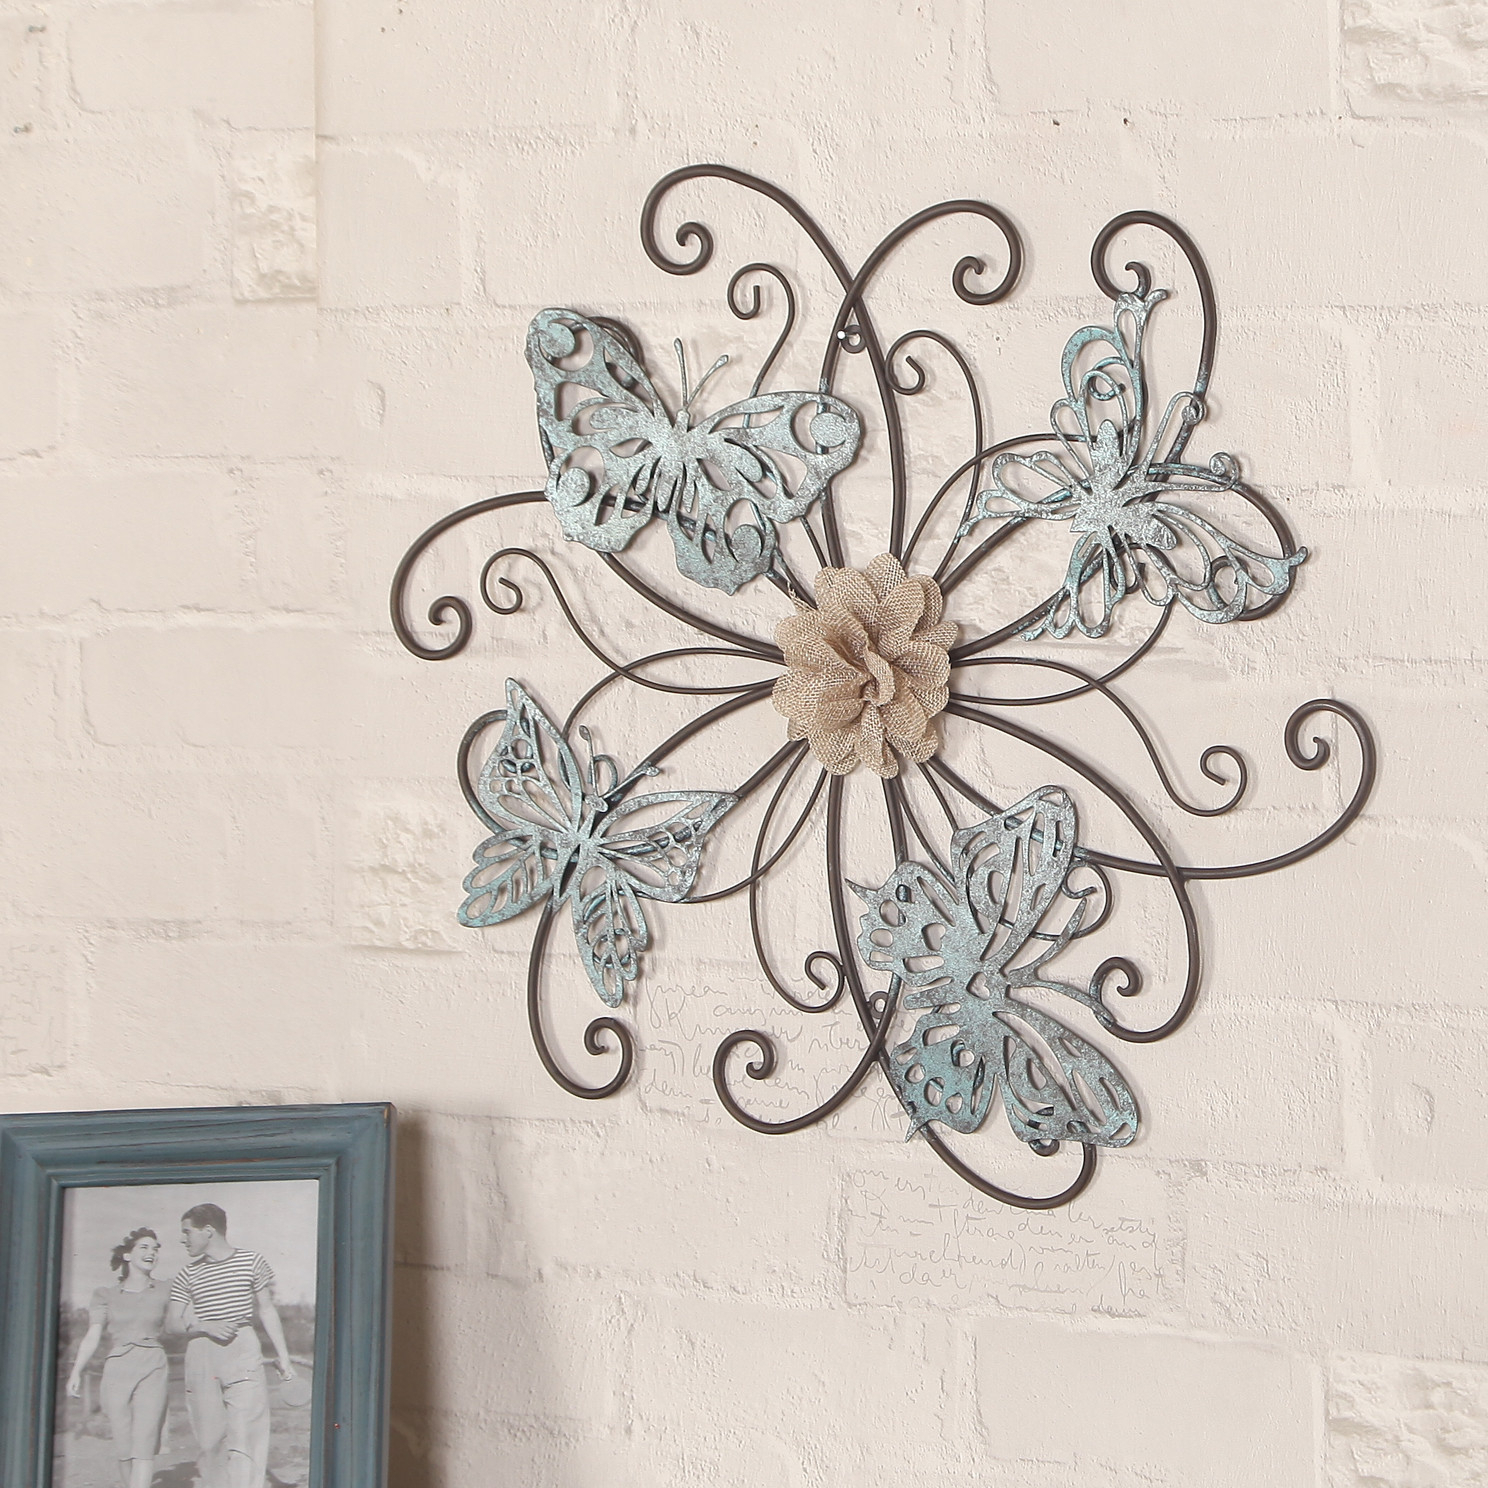 Ebay Intended For Well Liked Flower And Butterfly Urban Design Metal Wall Decor (Gallery 5 of 20)